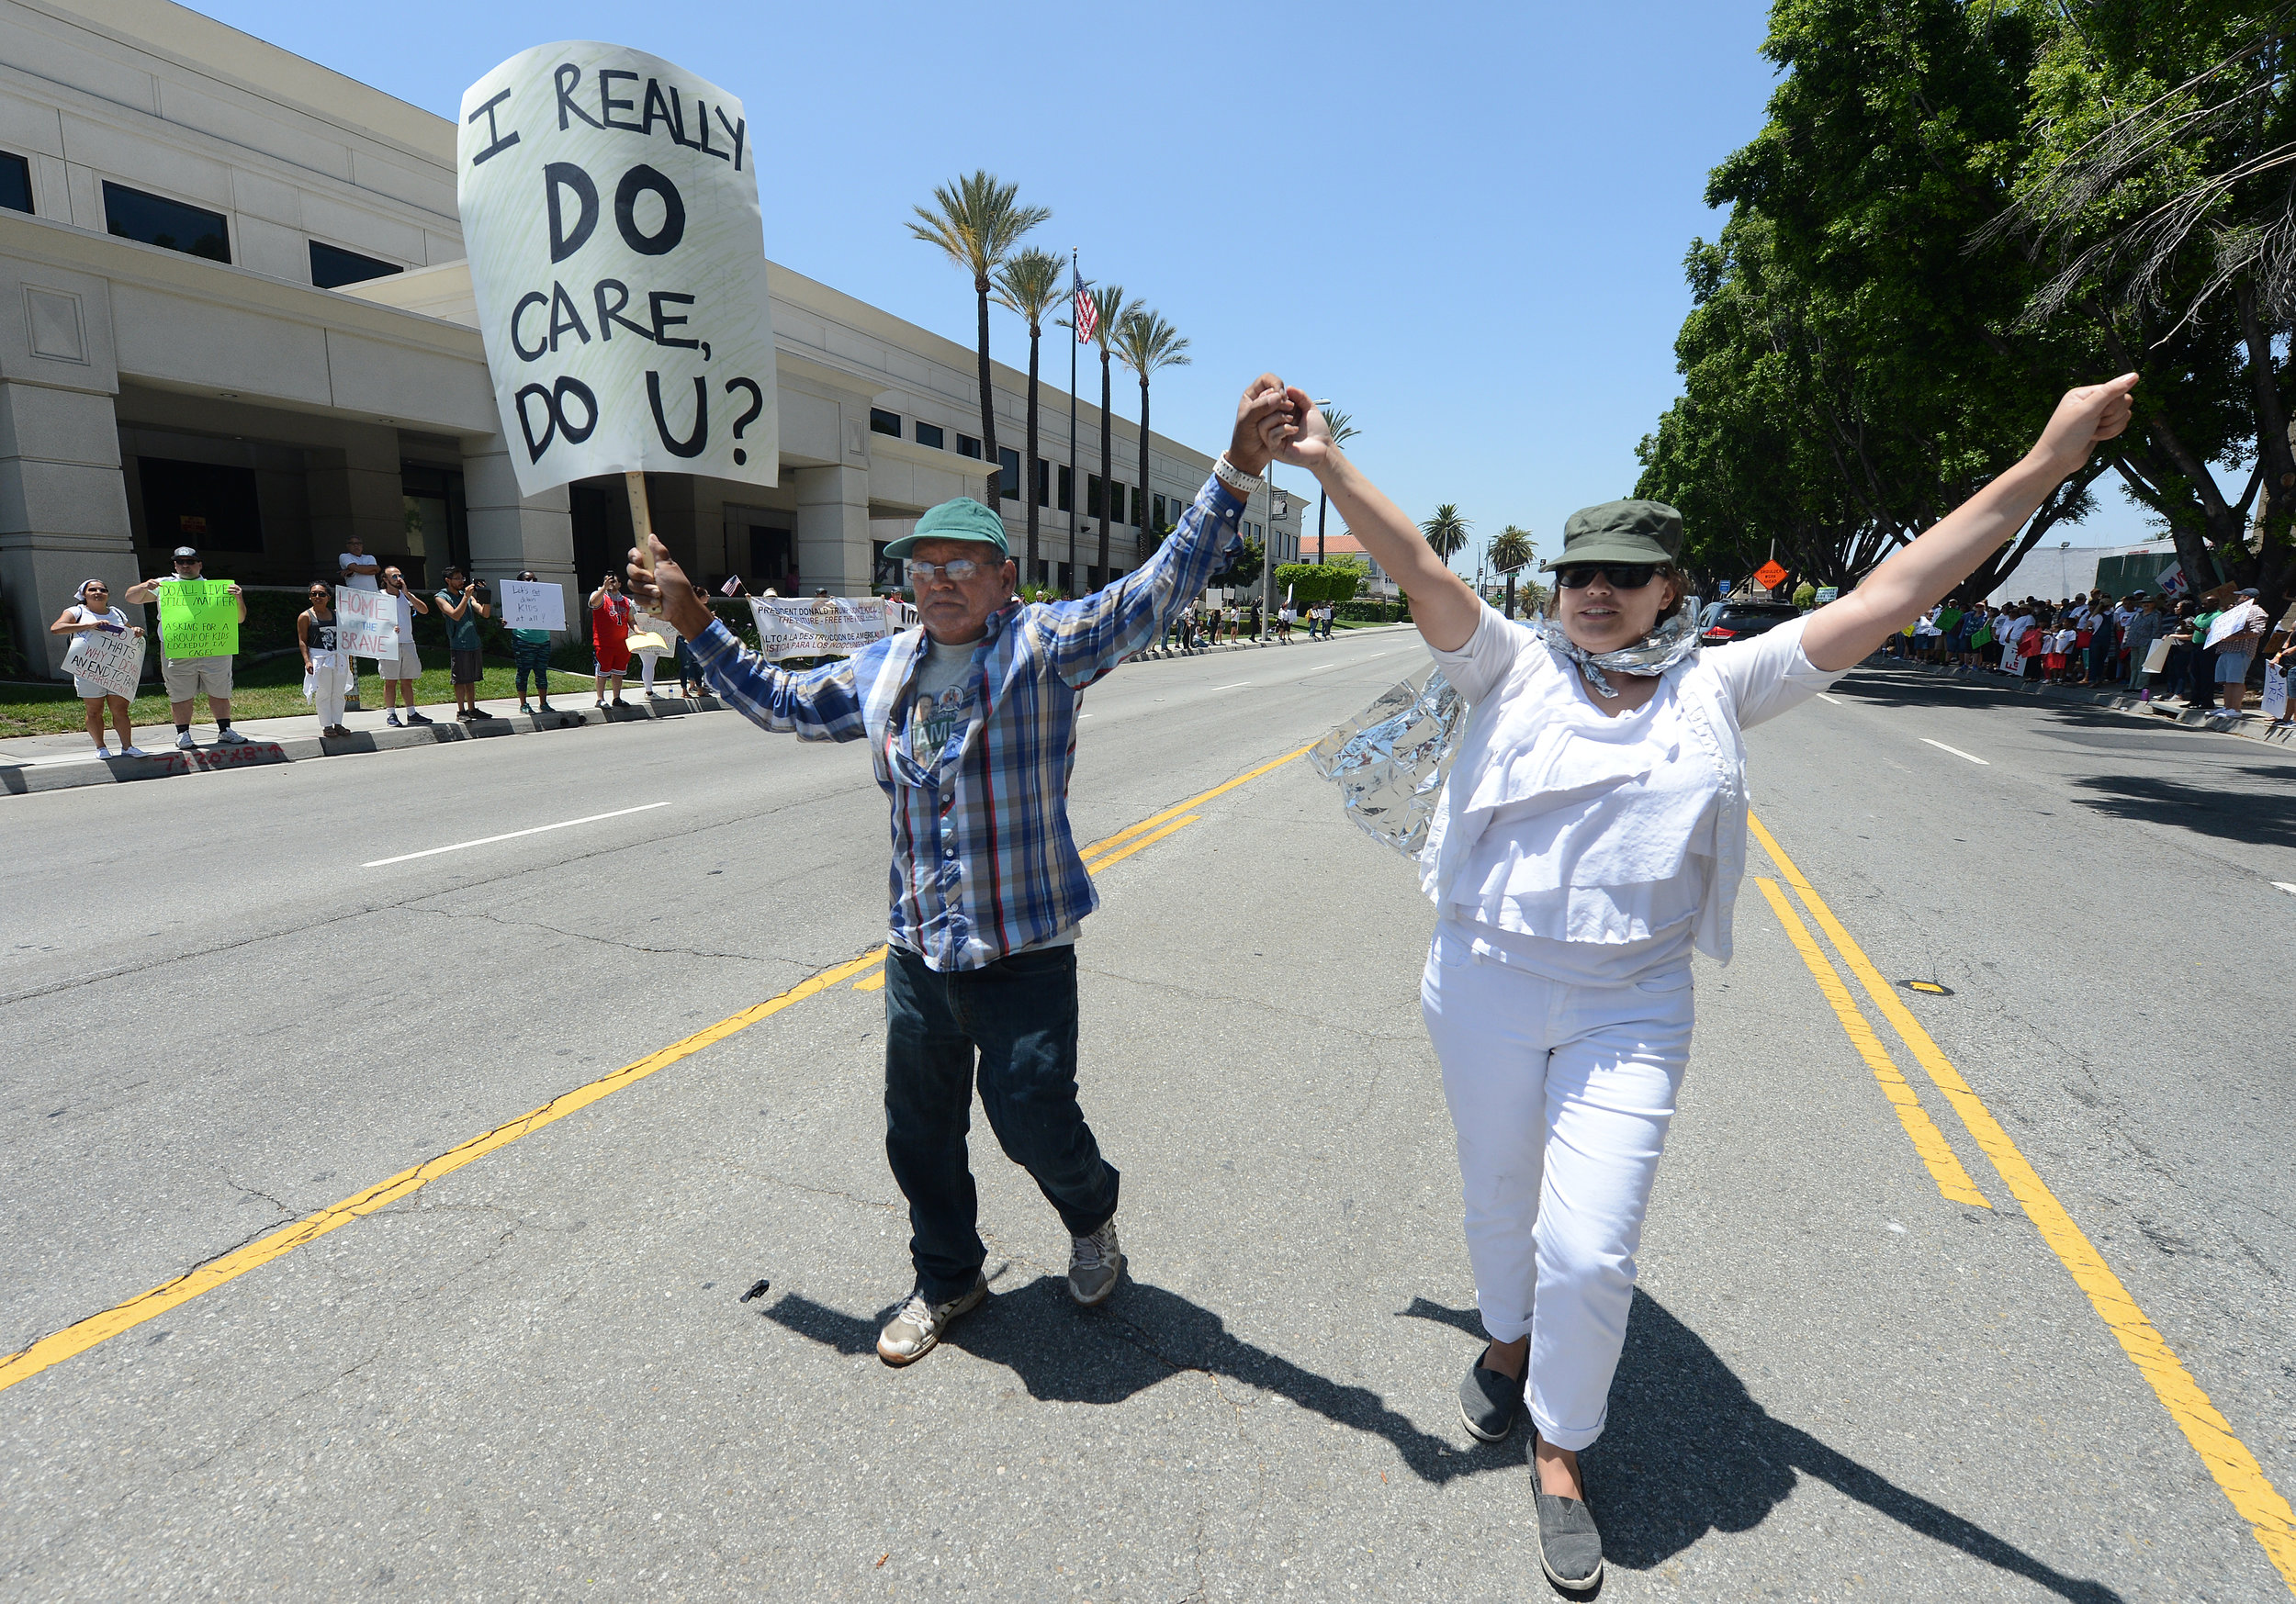 Subhash Arora (left), from San Bernardino, and Emilie Brill (right), from Loma Linda, protest in the middle of W. Rialto Avenue as approximately 450 others protesters look on as a part of the Families Belong Together rally outside the office of Homeland Security in San Bernardino on Saturday, June 30, 2018. The peaceful group gathered in support of immigrant families that have been separated by federal agents under U.S. policy.